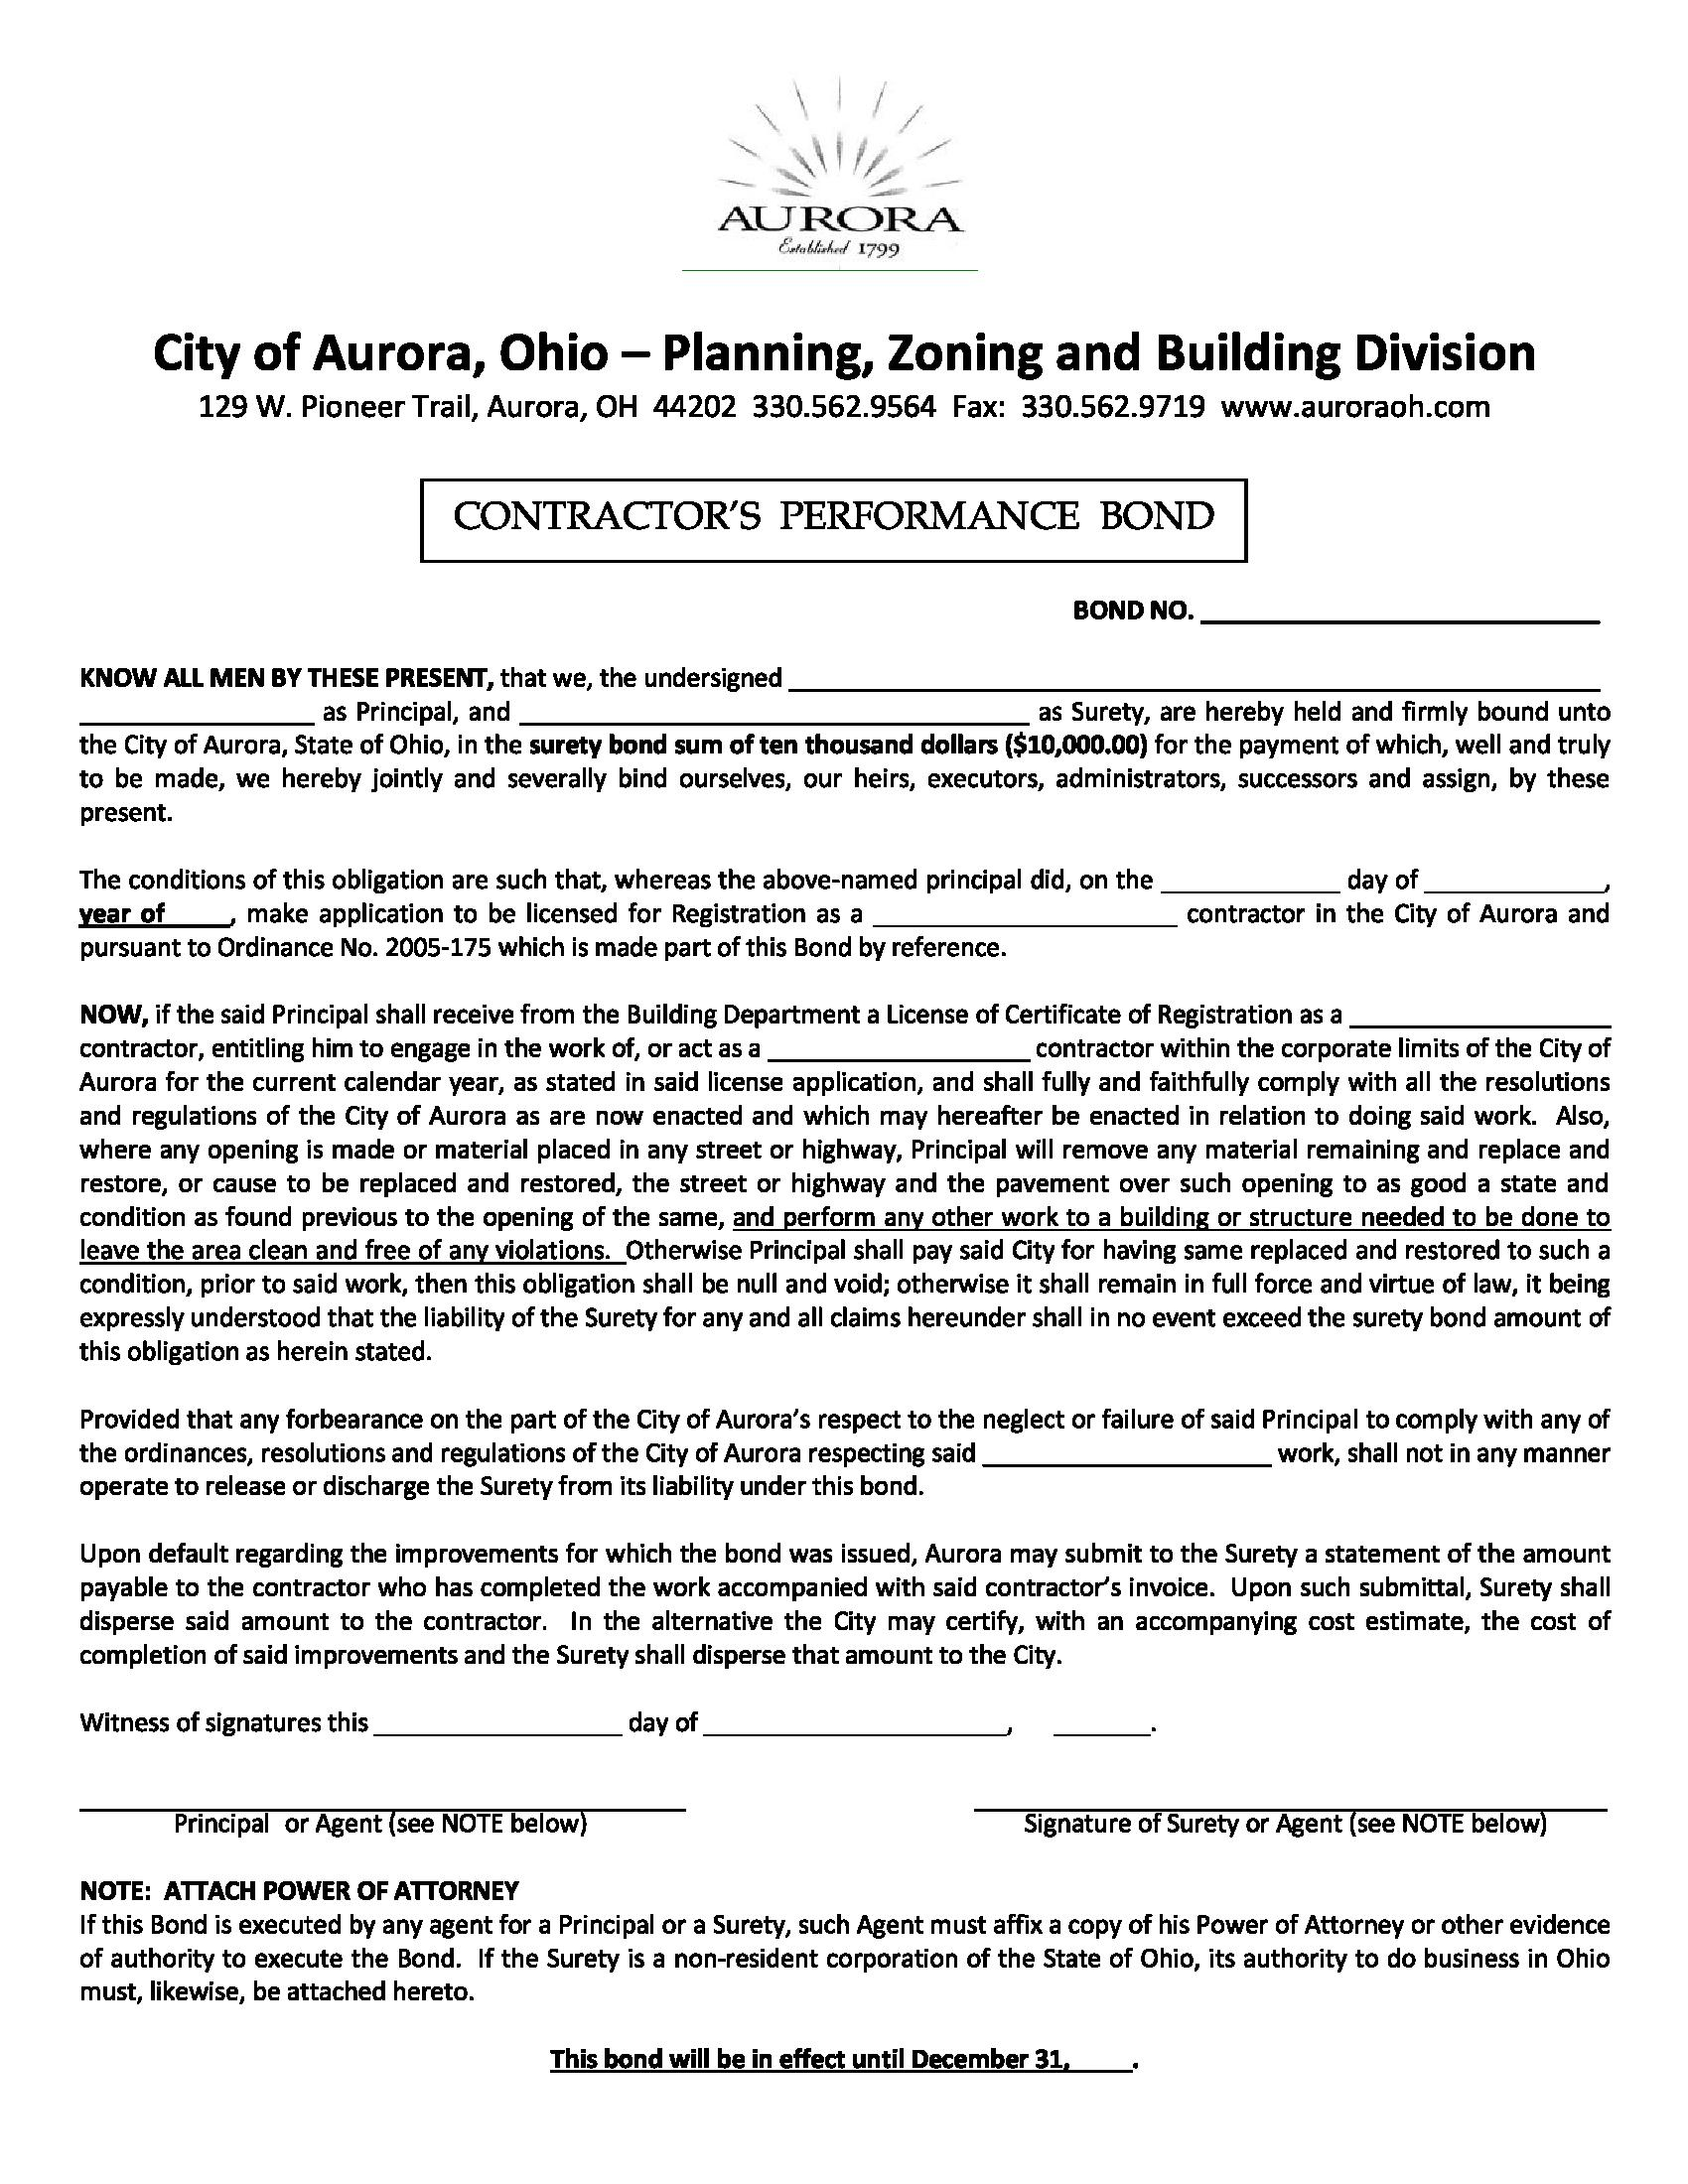 Aurora - City Contractor's Performance sample image